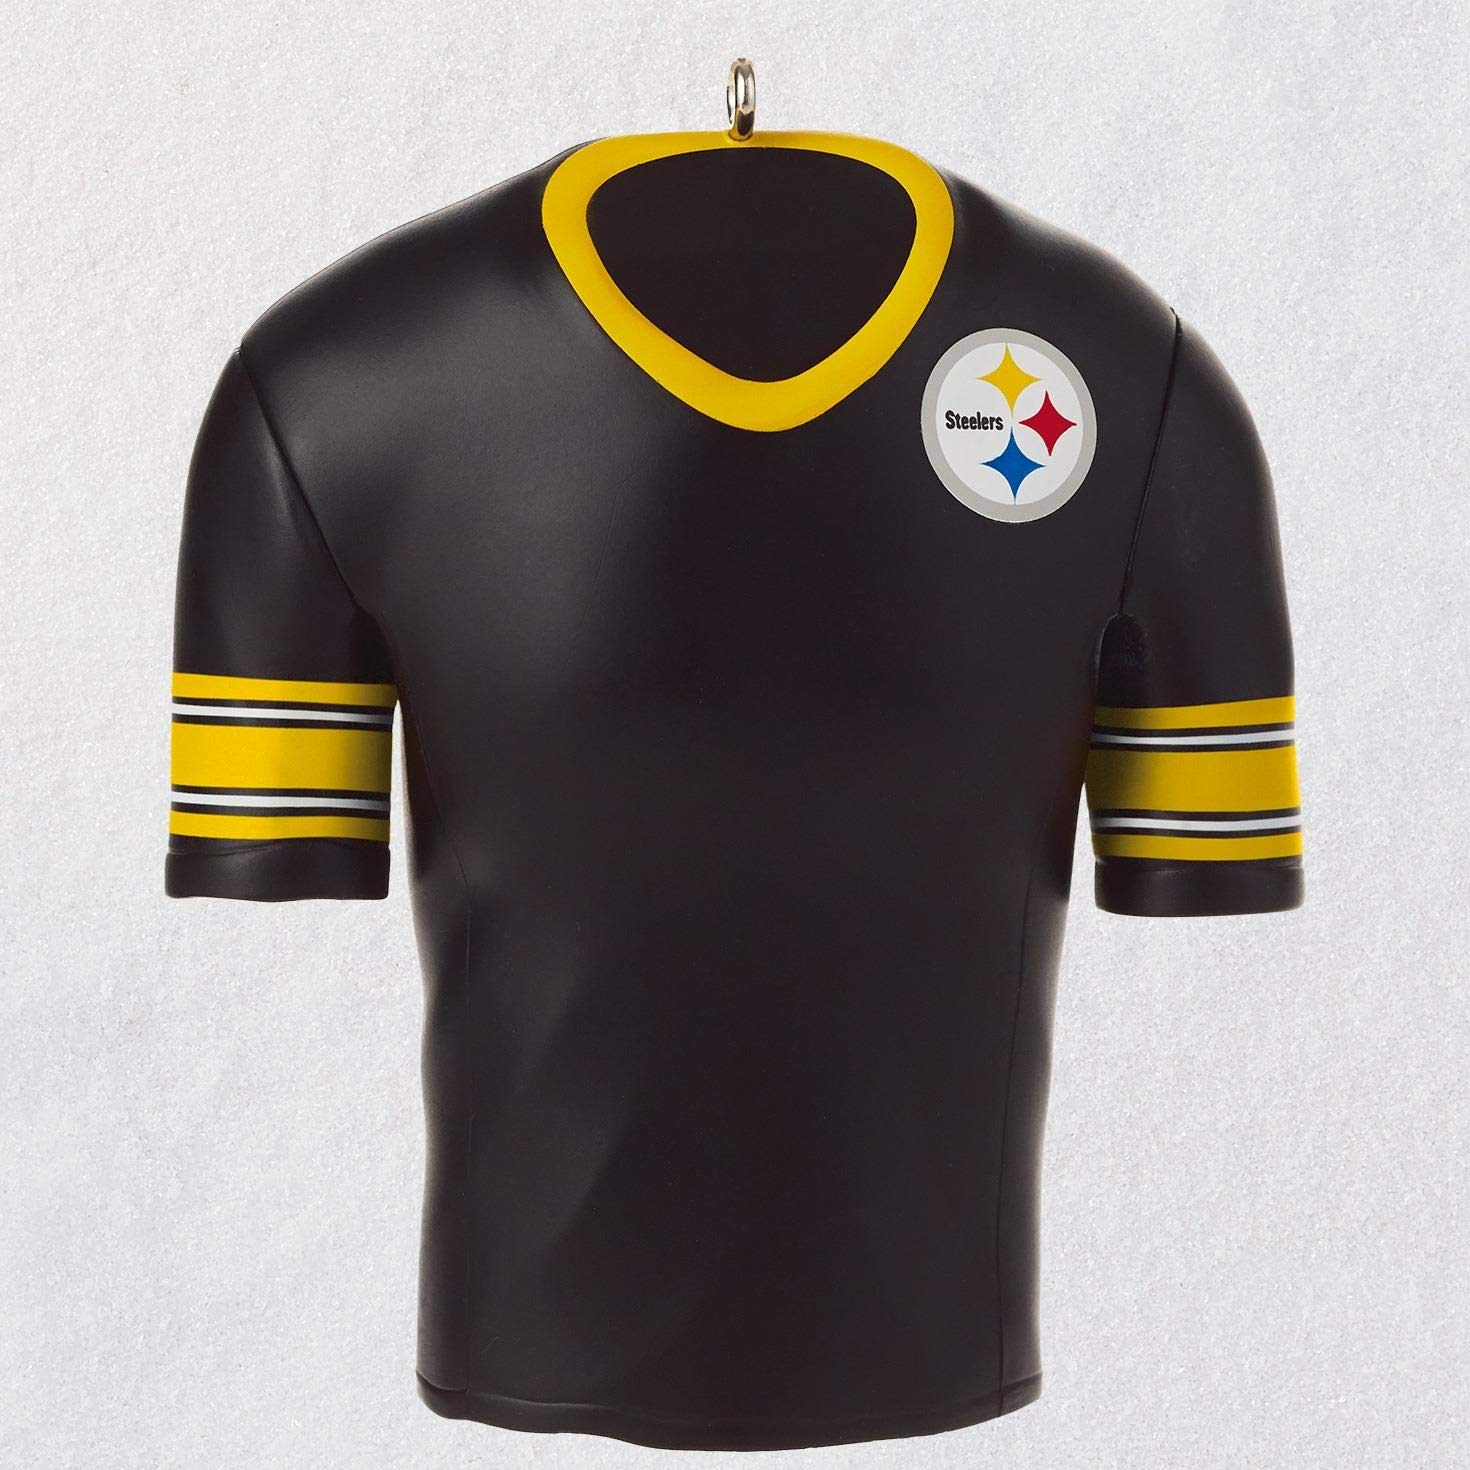 25f007b2 Hallmark Pittsburgh Steelers Jersey Ornament Sports & Activities,City &  State